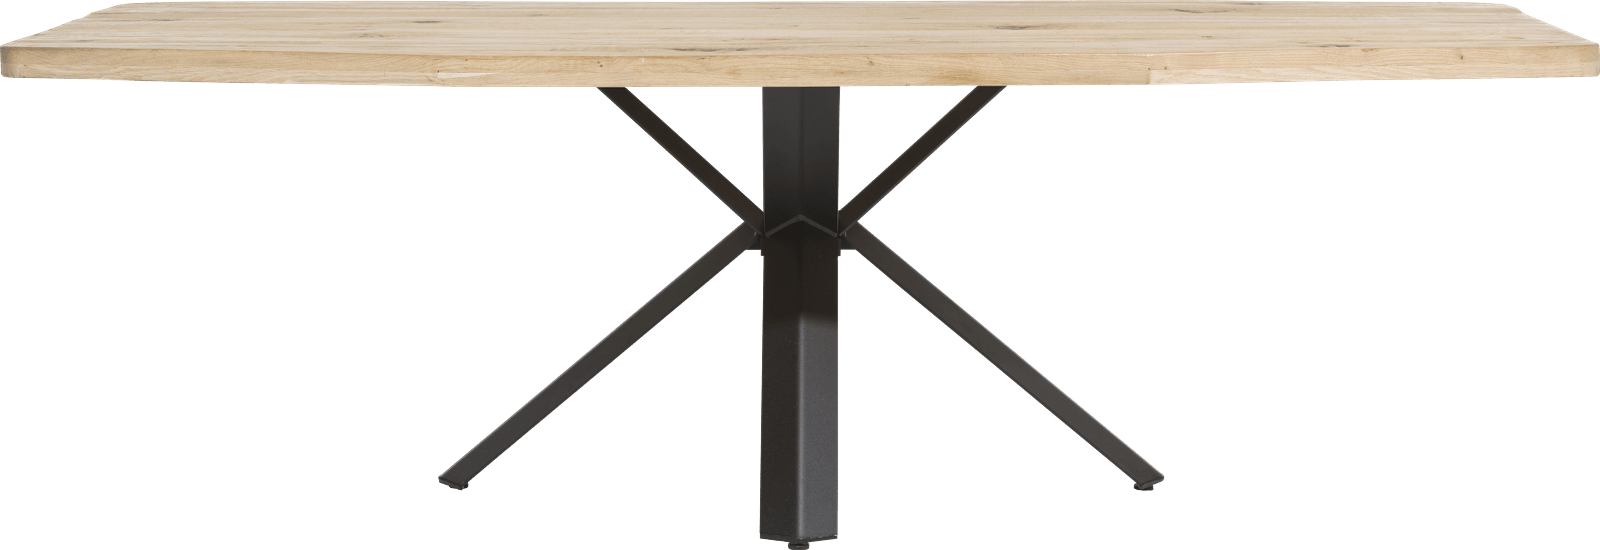 Maddox - table 250 x 100 cm - bois - pied forme etoile